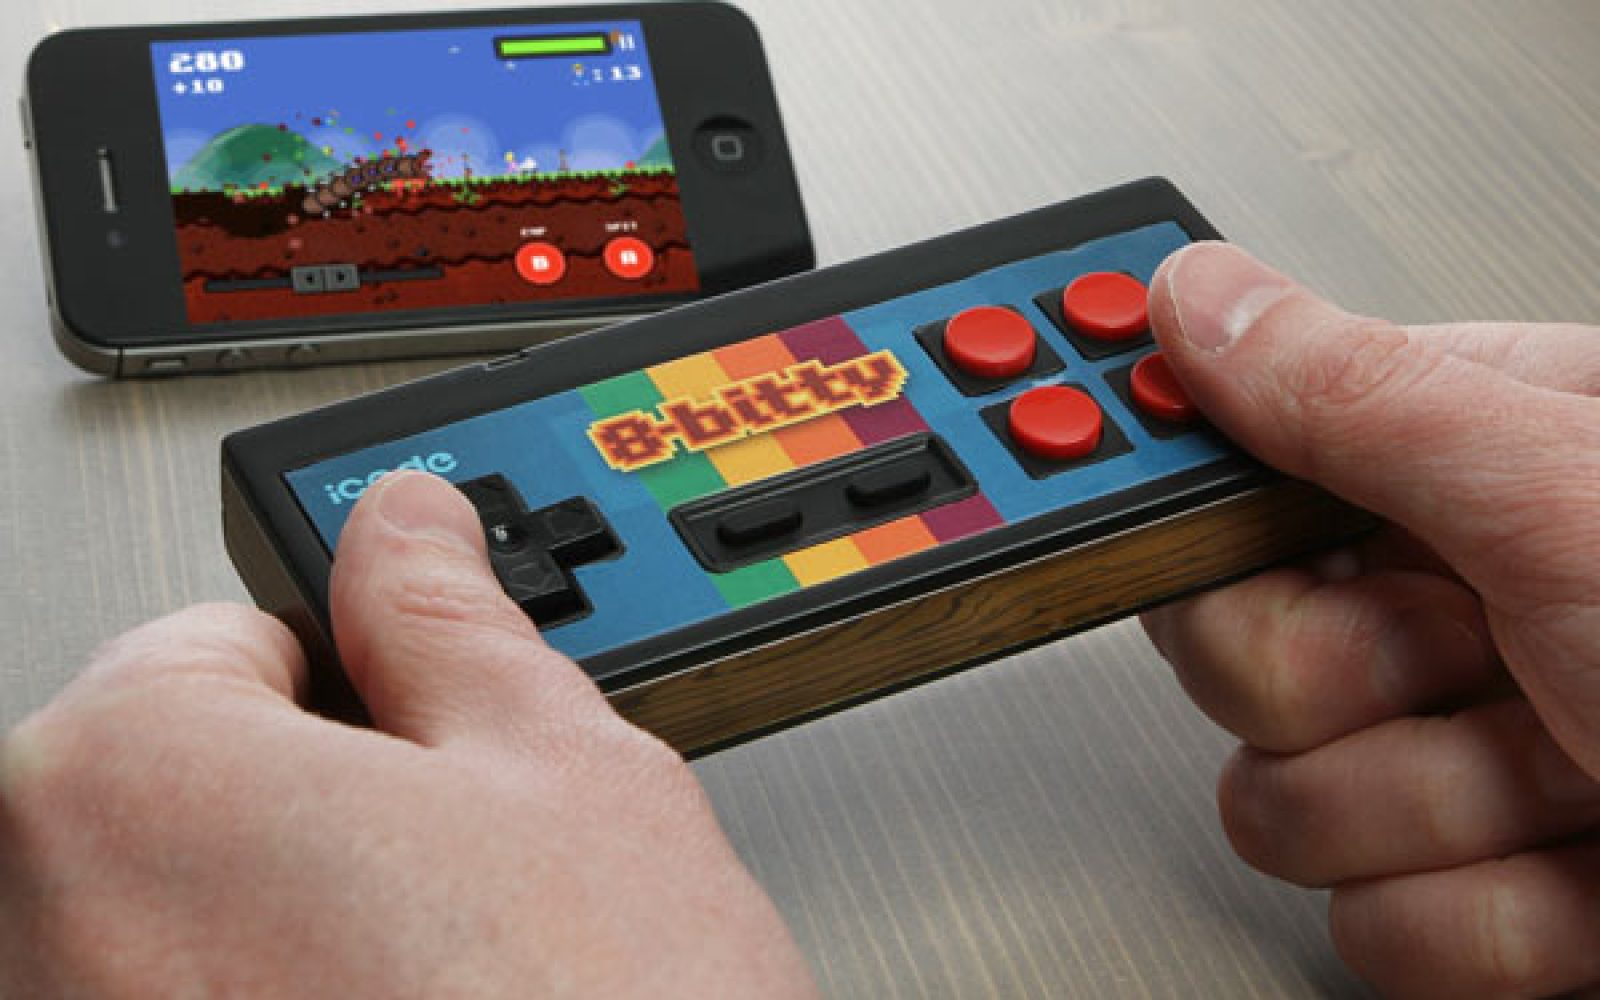 8-Bitty' Nintendo-style iCade controller for iOS devices, coming